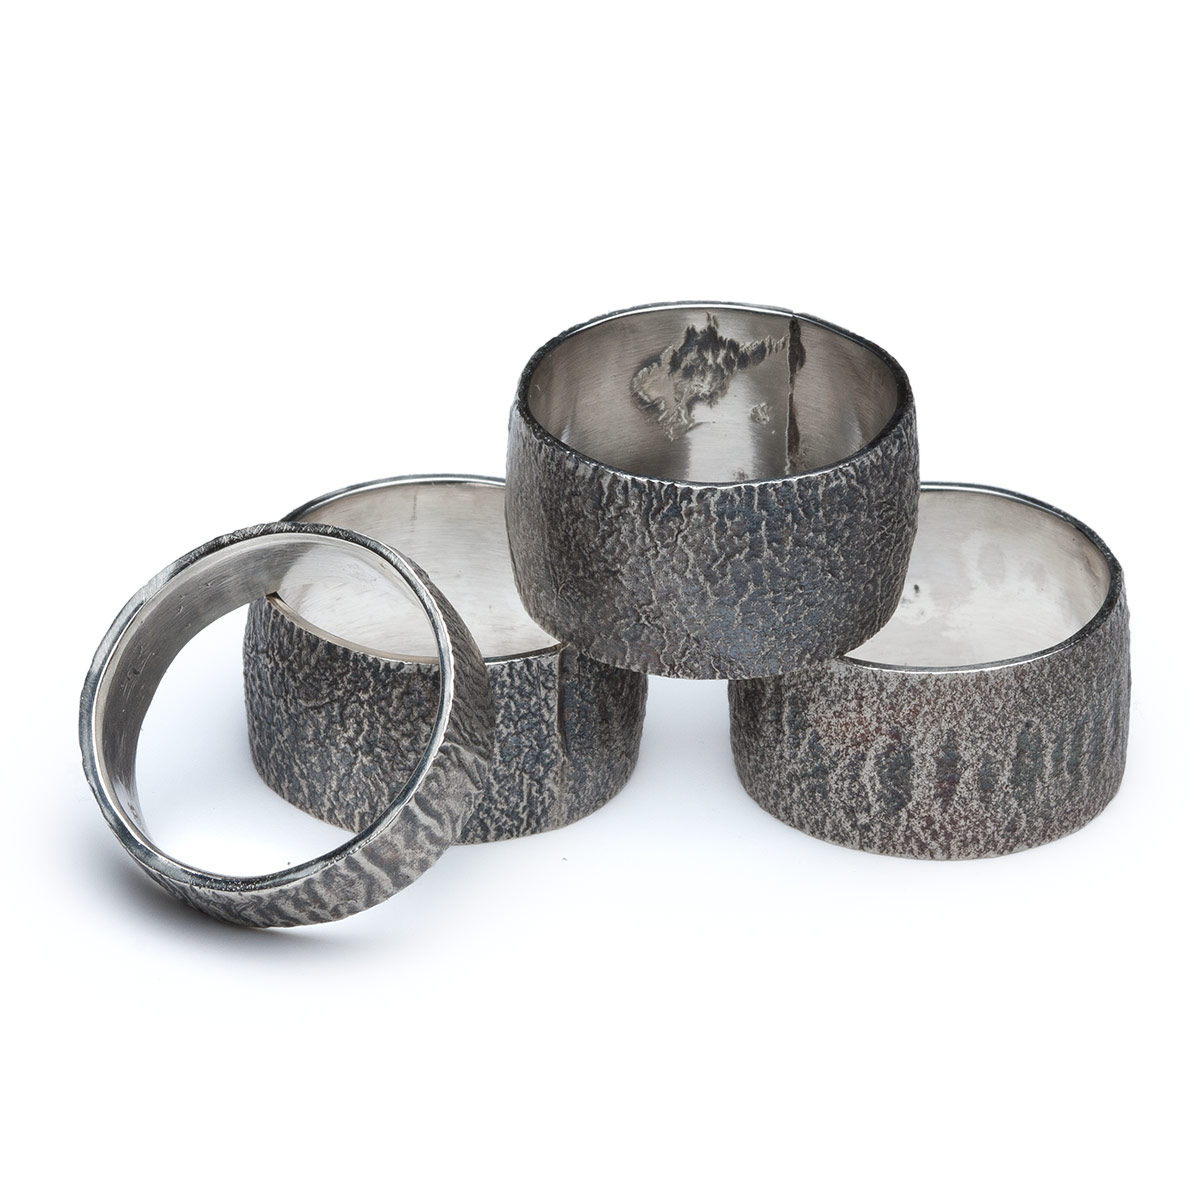 Some examples of reticulated rings I made.